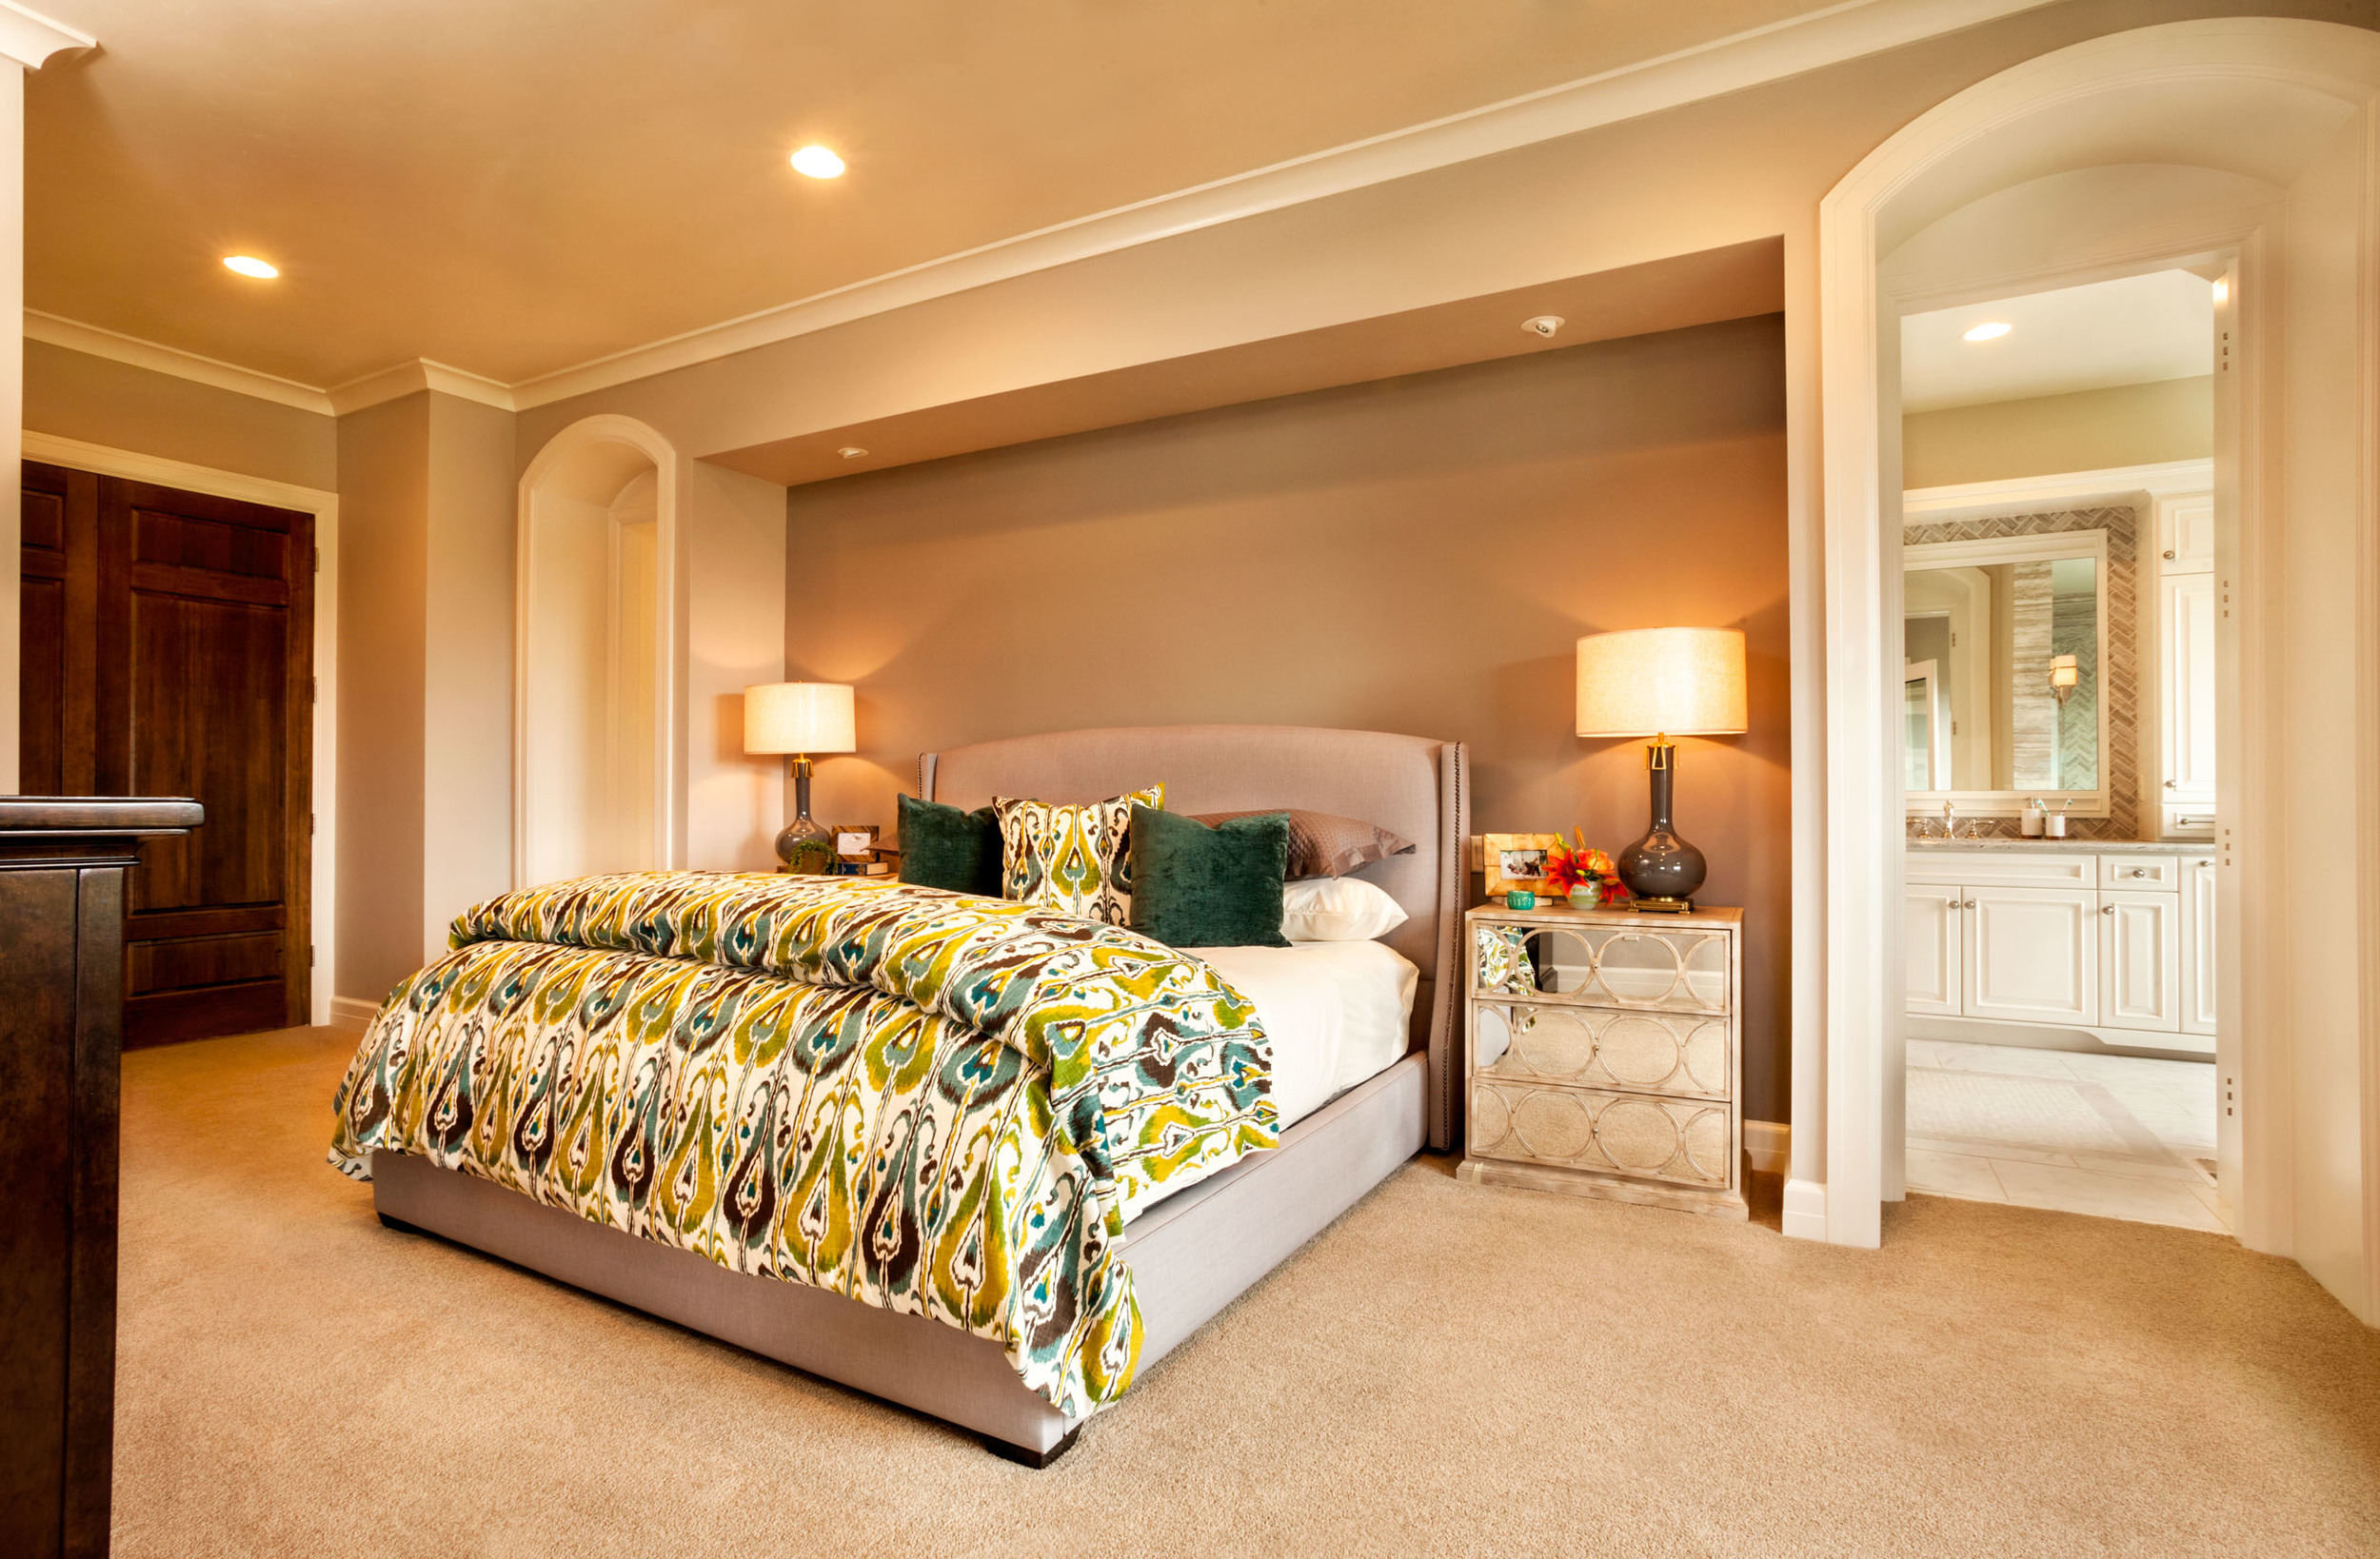 street of dreams master bedroom, interior designers from the street of dreams, the best oregon interior designers